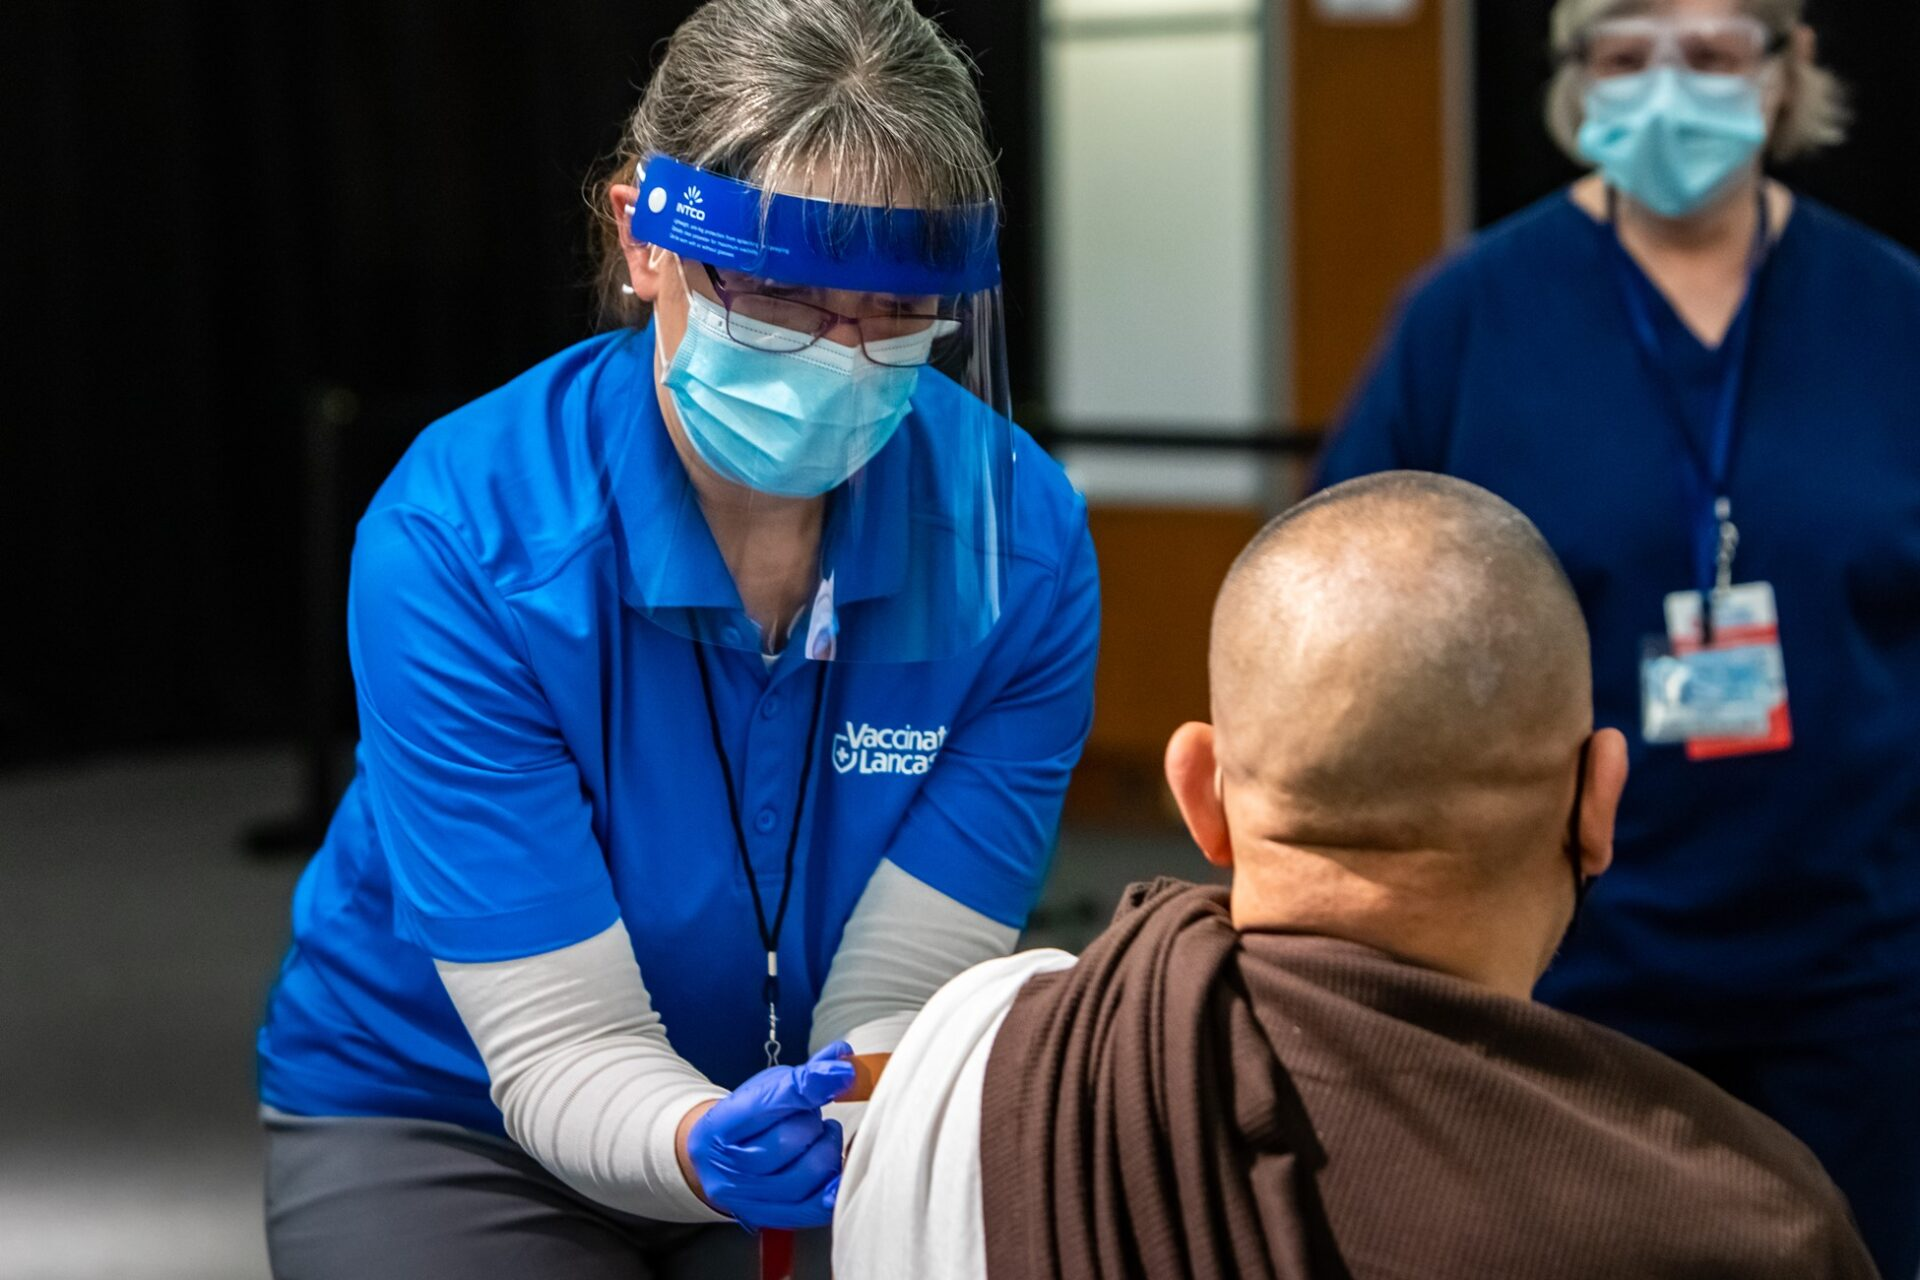 A staff member inoculates a patient with a Covid-19 vaccine at the Vaccinate Lancaster community vaccination center on its opening day, Wednesday, March 10, 2021. (Source: Provided)